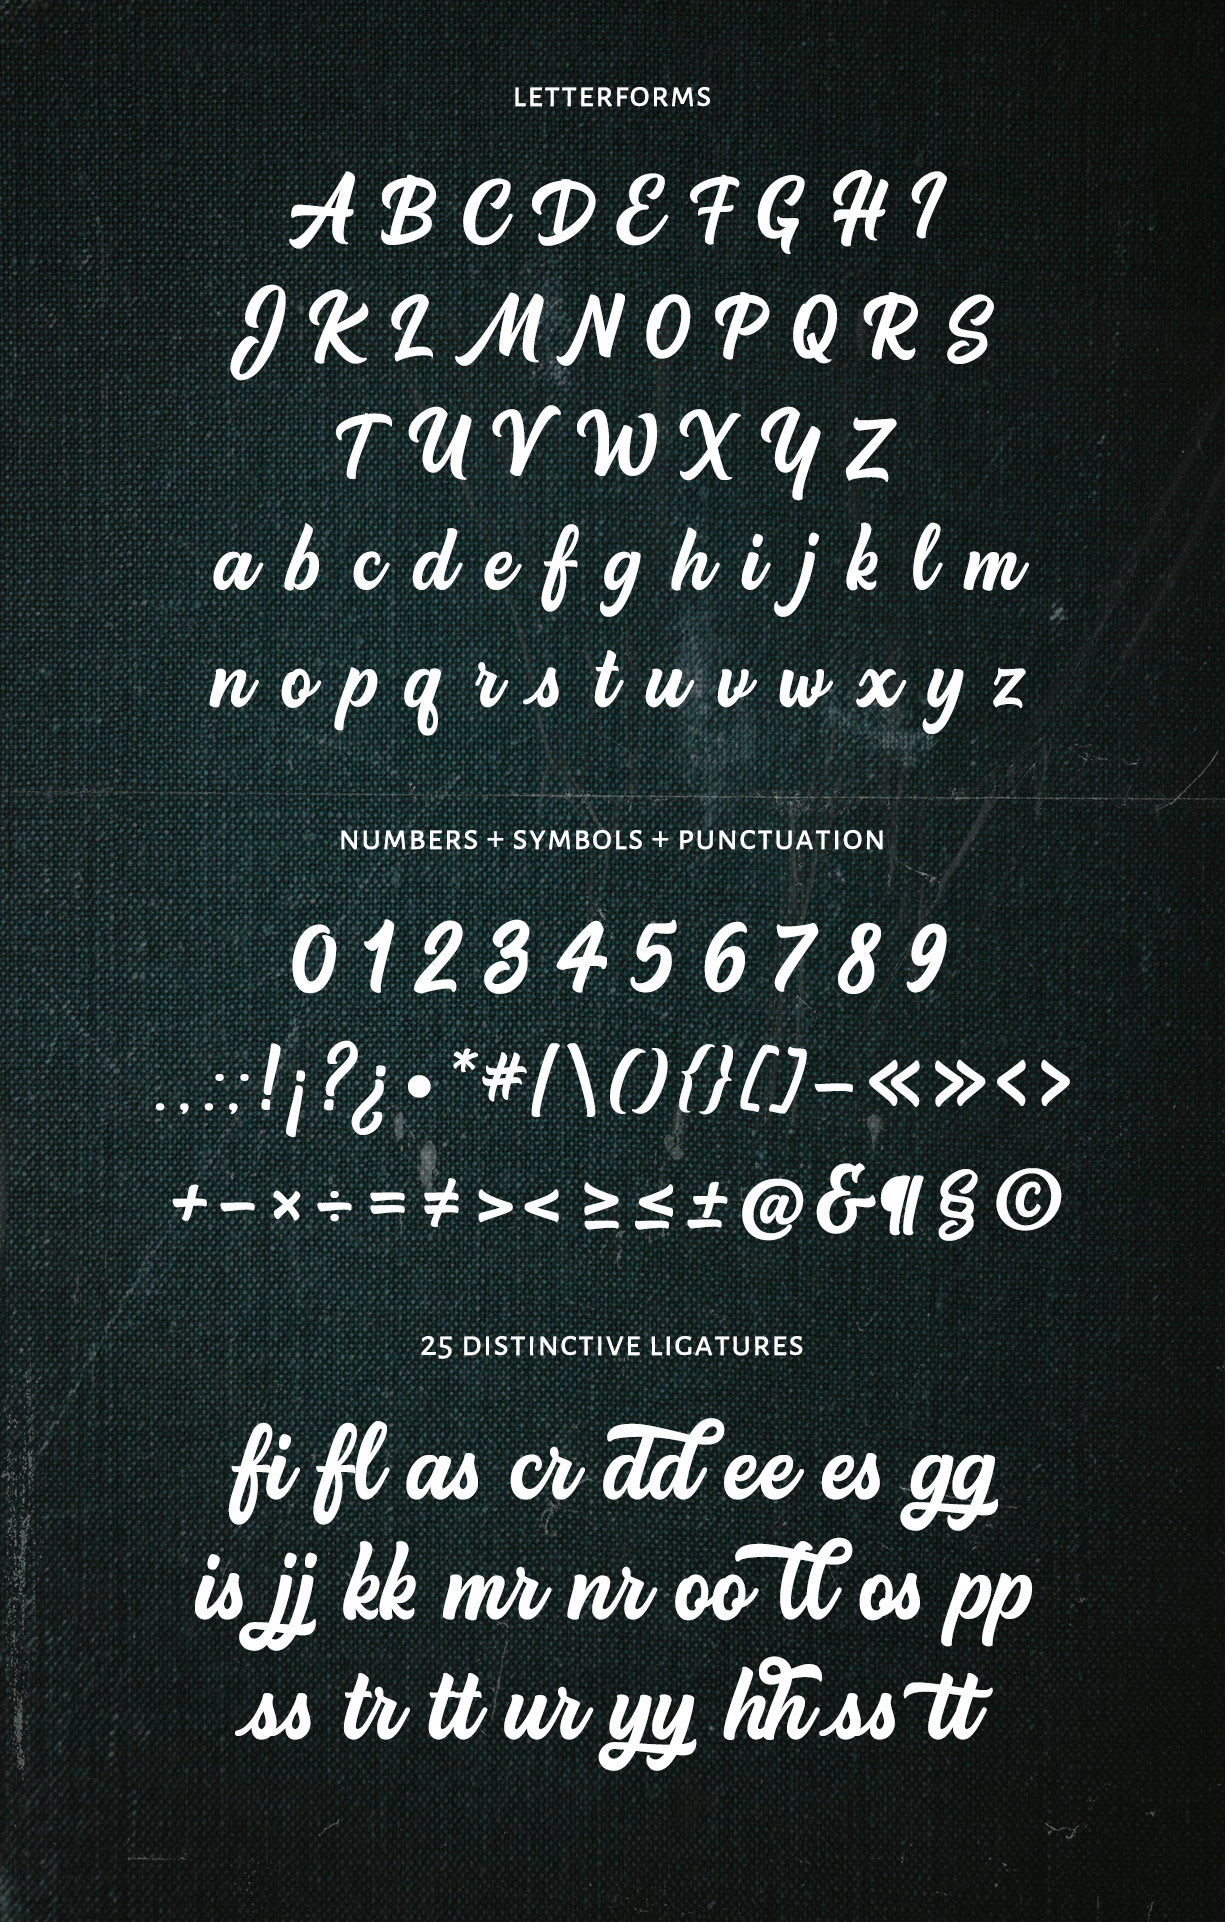 honestdesignersscript_letterforms1